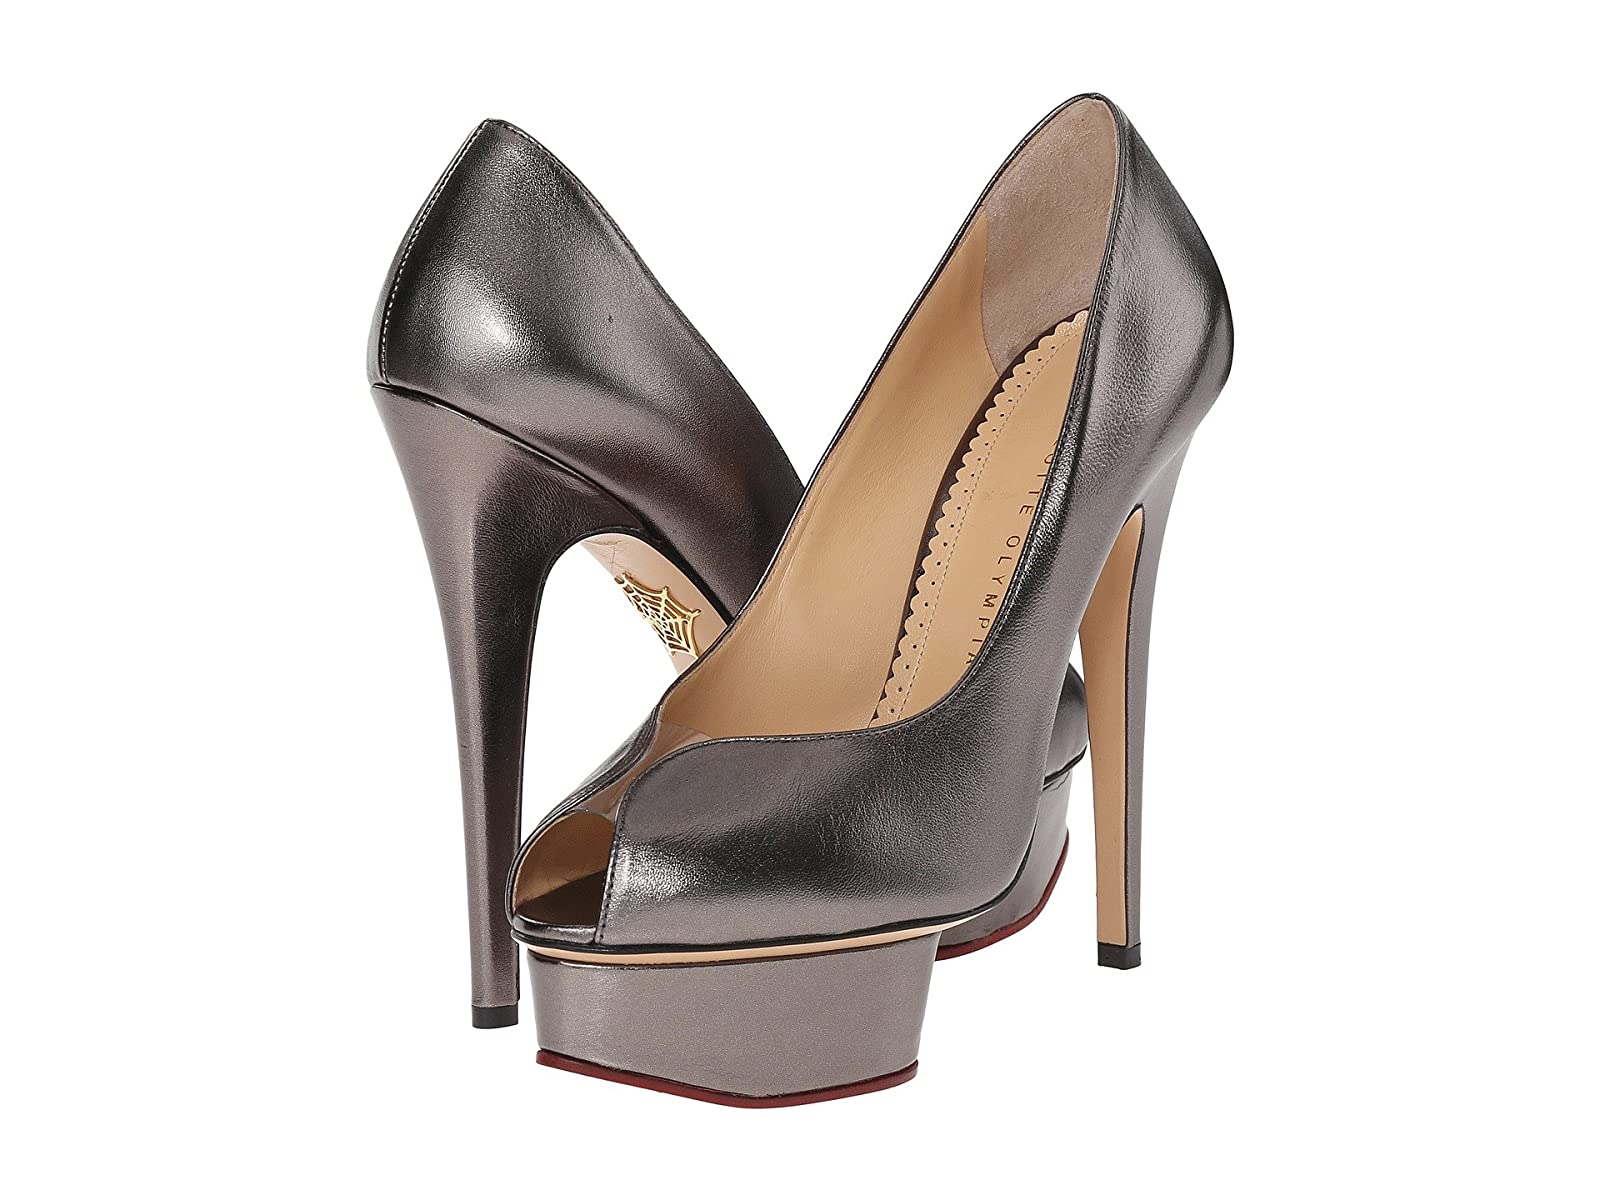 Charlotte Olympia Daphne PlatformCheap and distinctive eye-catching shoes